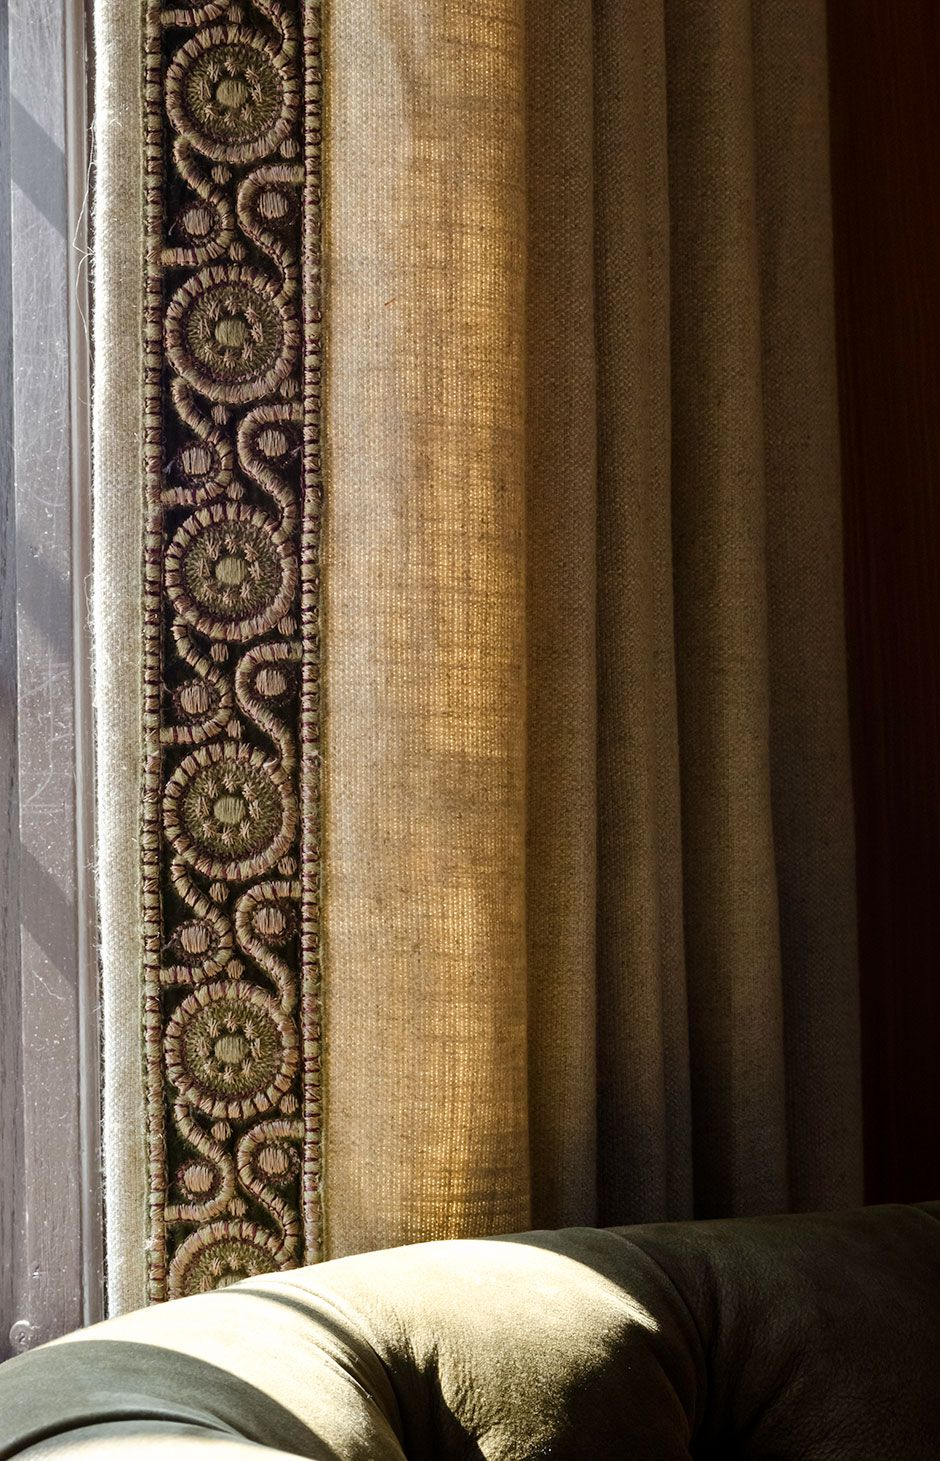 Rustic burlap window treatments - Find This Pin And More On Window Treatment